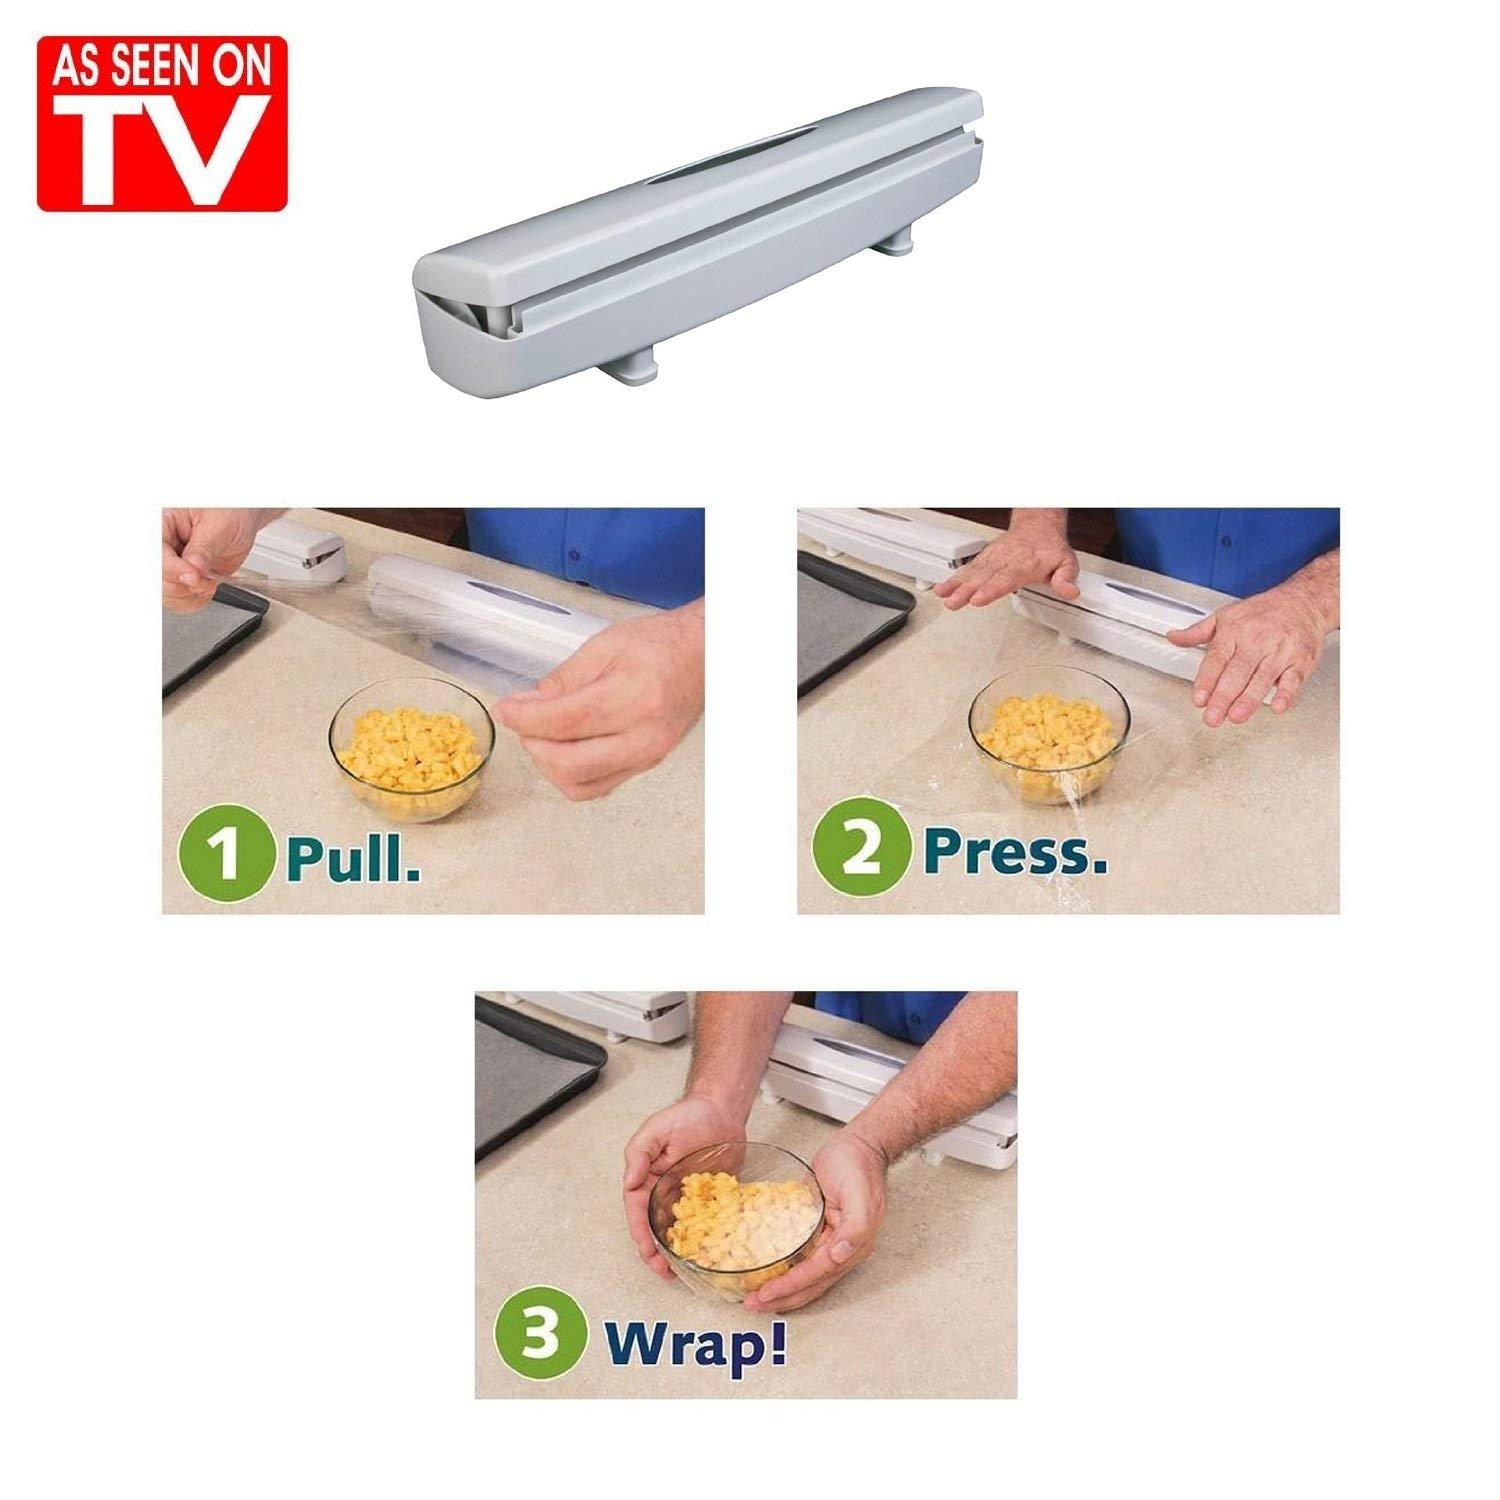 Coolmade Plastic Wrap Cutter, Food Freshness Wraptastic Dispenser Preservative Film Unwinding Cutting Foil Cling Wrap Kitchen Accessories - Easy to Use Wrap Dispener, Just Pull, Press, Cut and Wrap